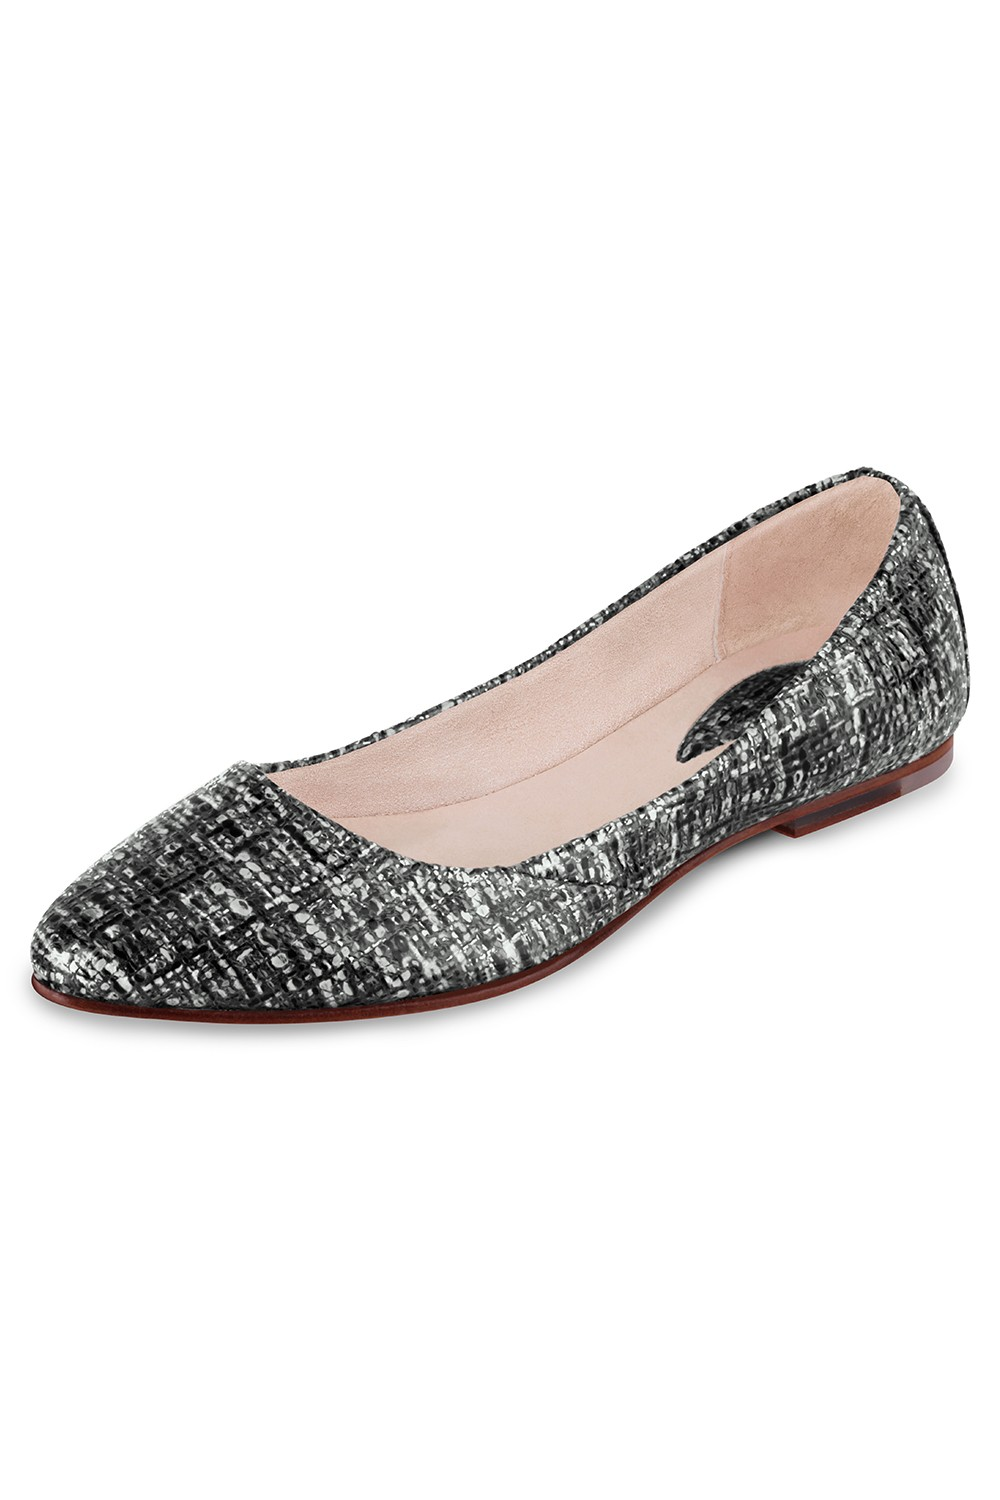 Veronique Ladies Ballet Flat Womens Fashion Shoes